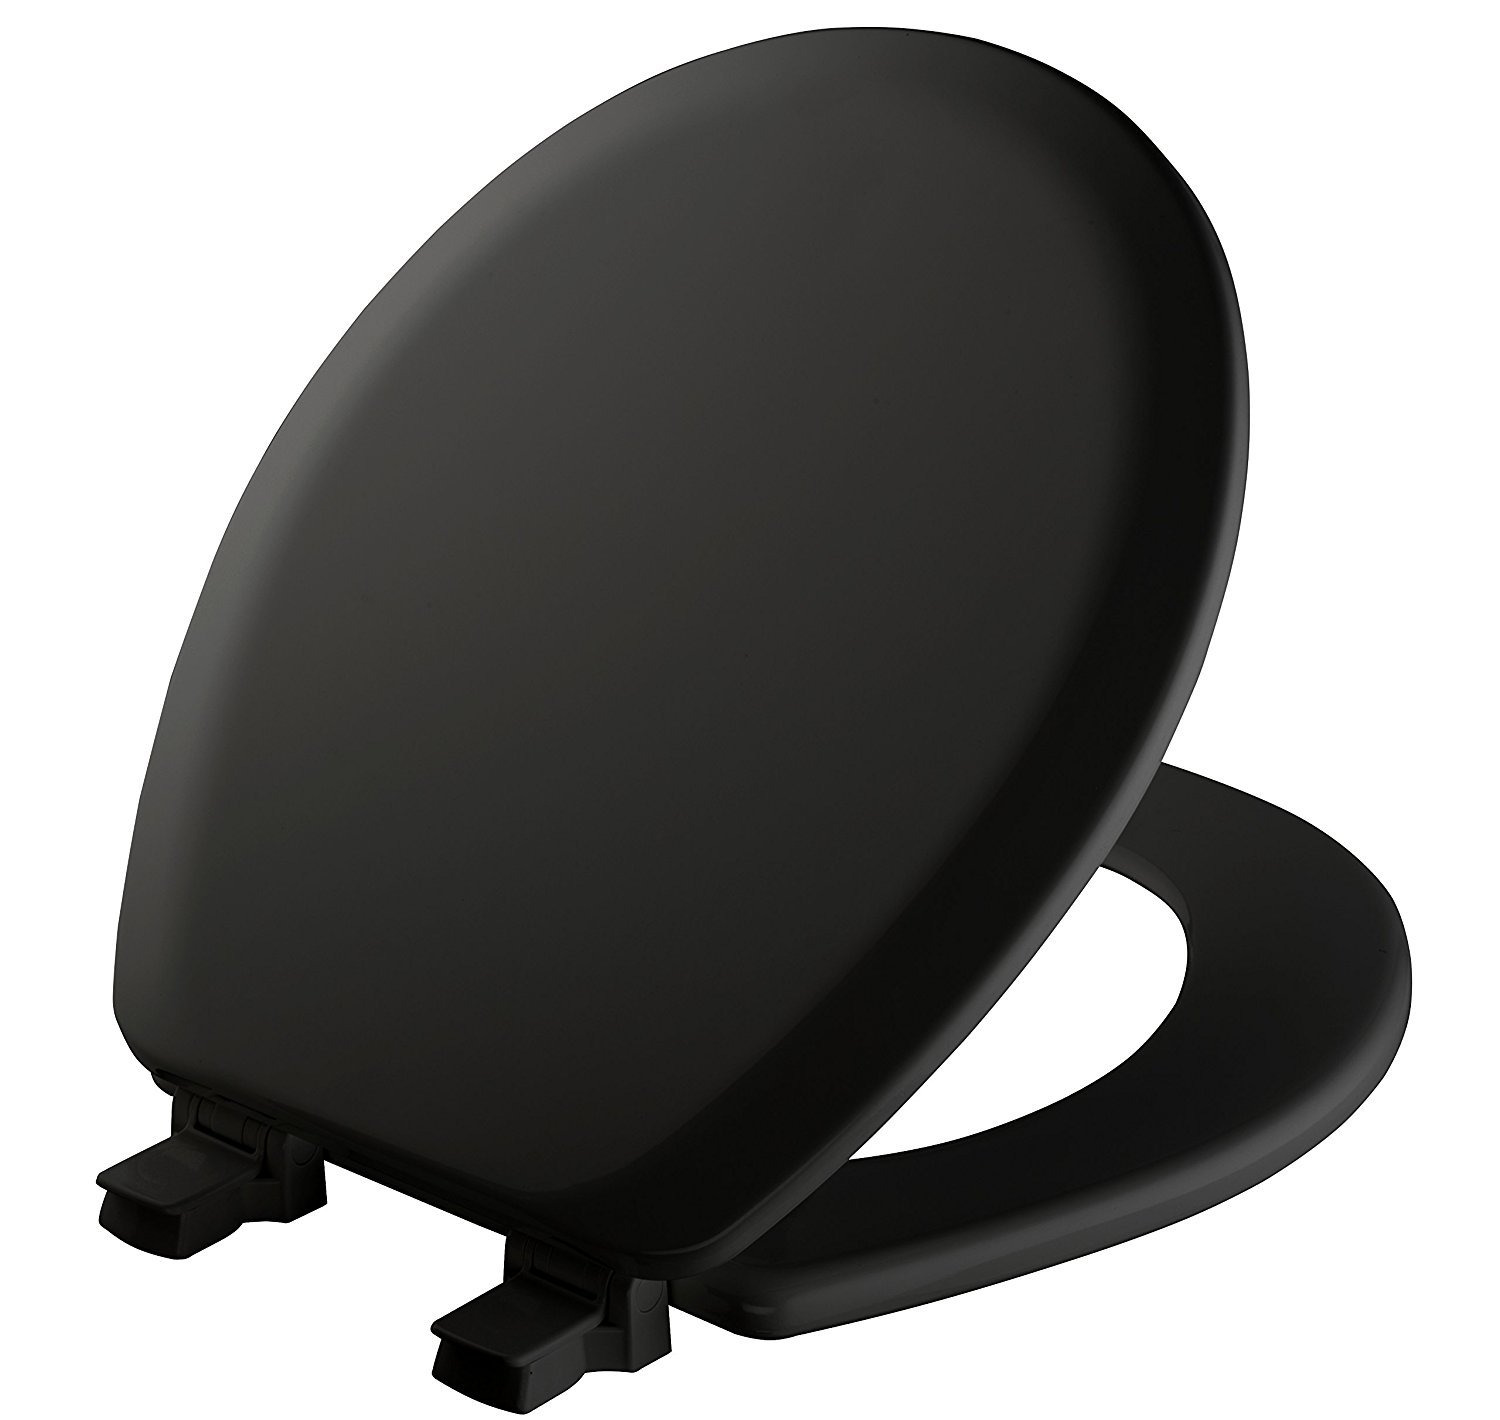 Mayfair Molded Wood Toilet Seat with Easy Clean & Change Hinges and STA-TITE Seat Fastening System, Round, Black, 41EC 047 by Mayfair